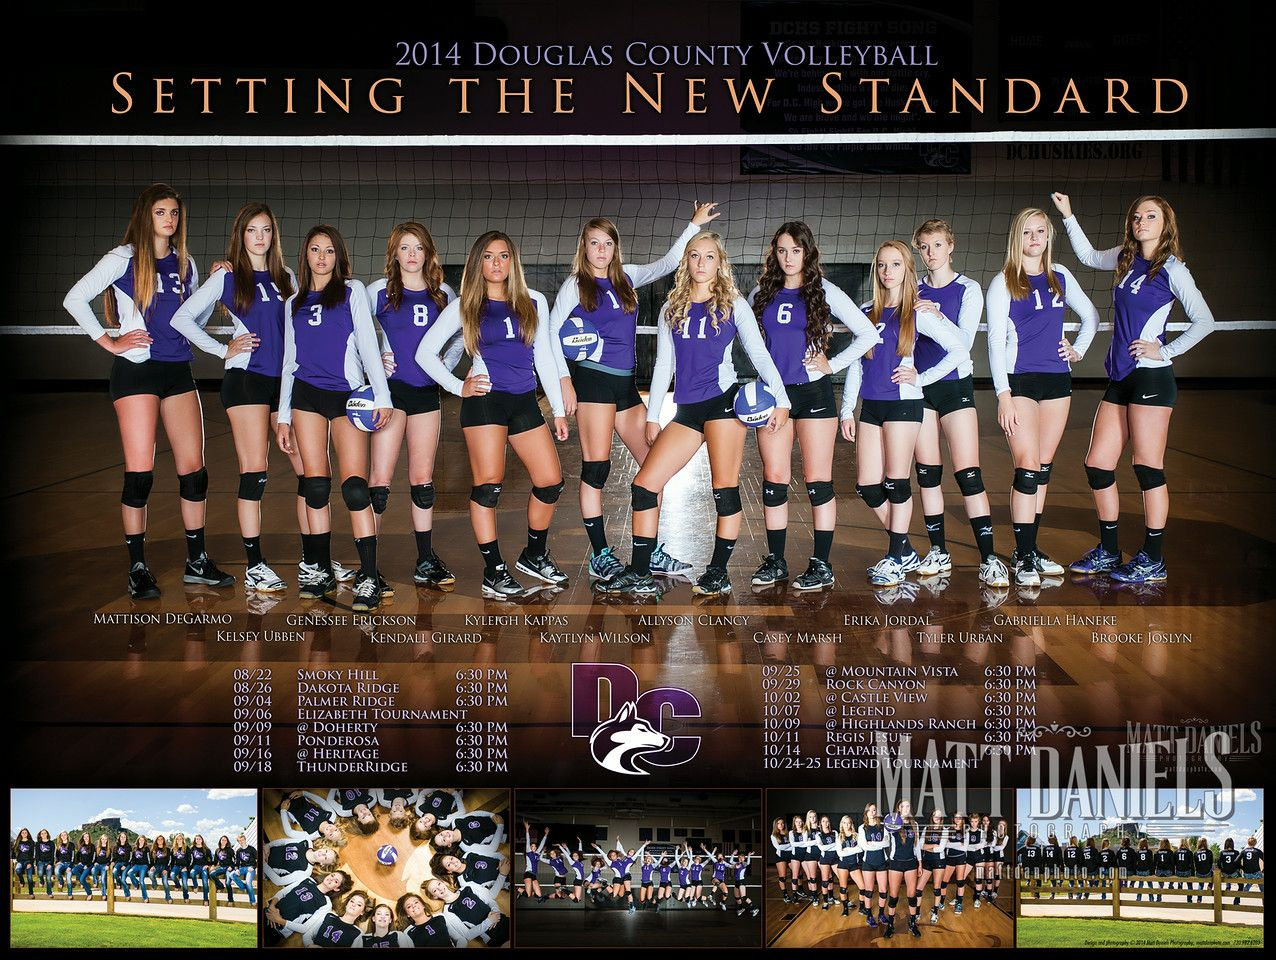 2014 Douglas County Volleyball Photography And Poster Copyright 2014 Matt Daniels Photography Volleyball Team Photos Volleyball Photography Volleyball Photos